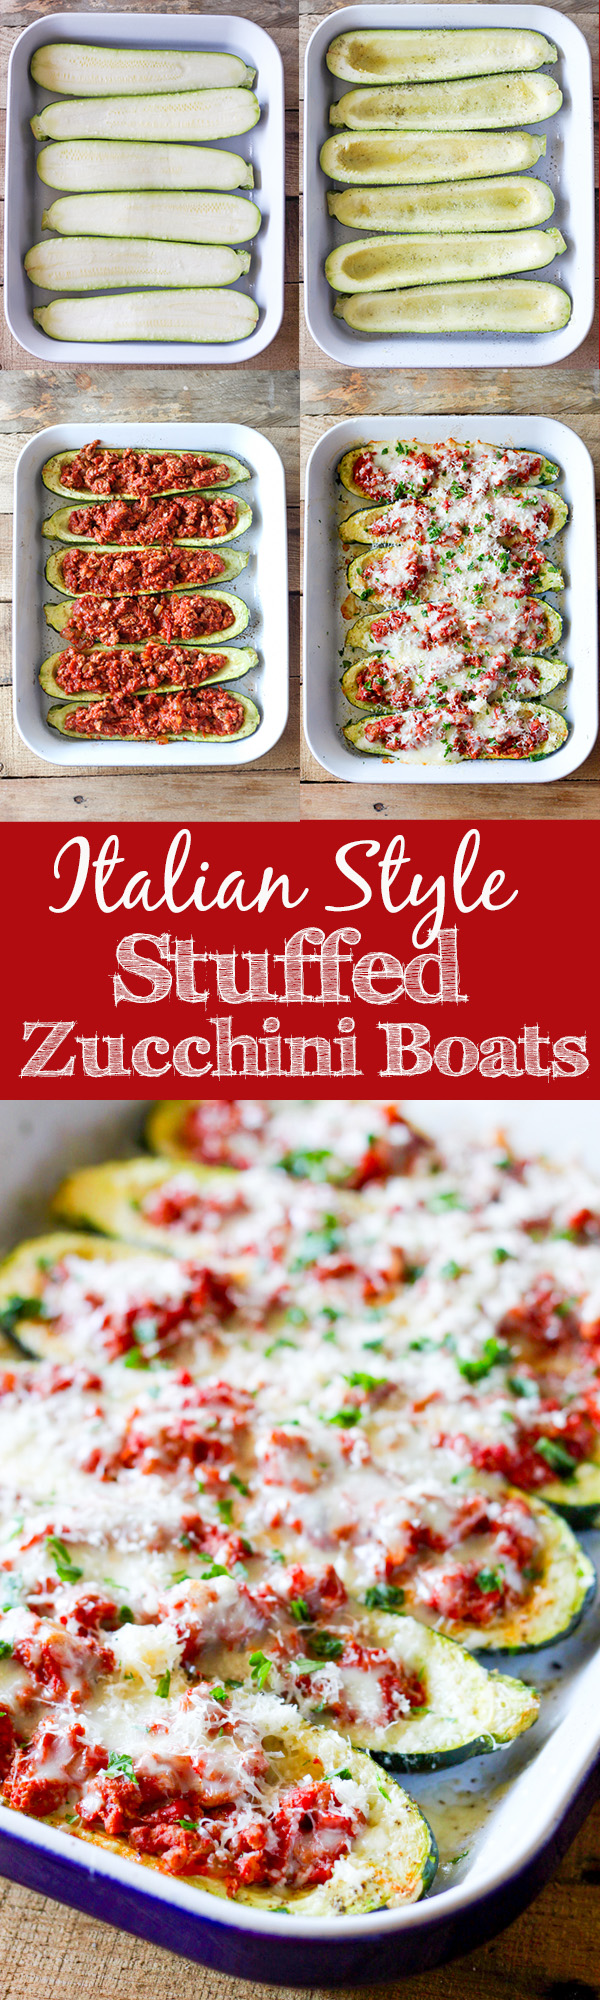 Italian Stuffed Zucchini Boats - roasted zucchini boats stuffed with ...